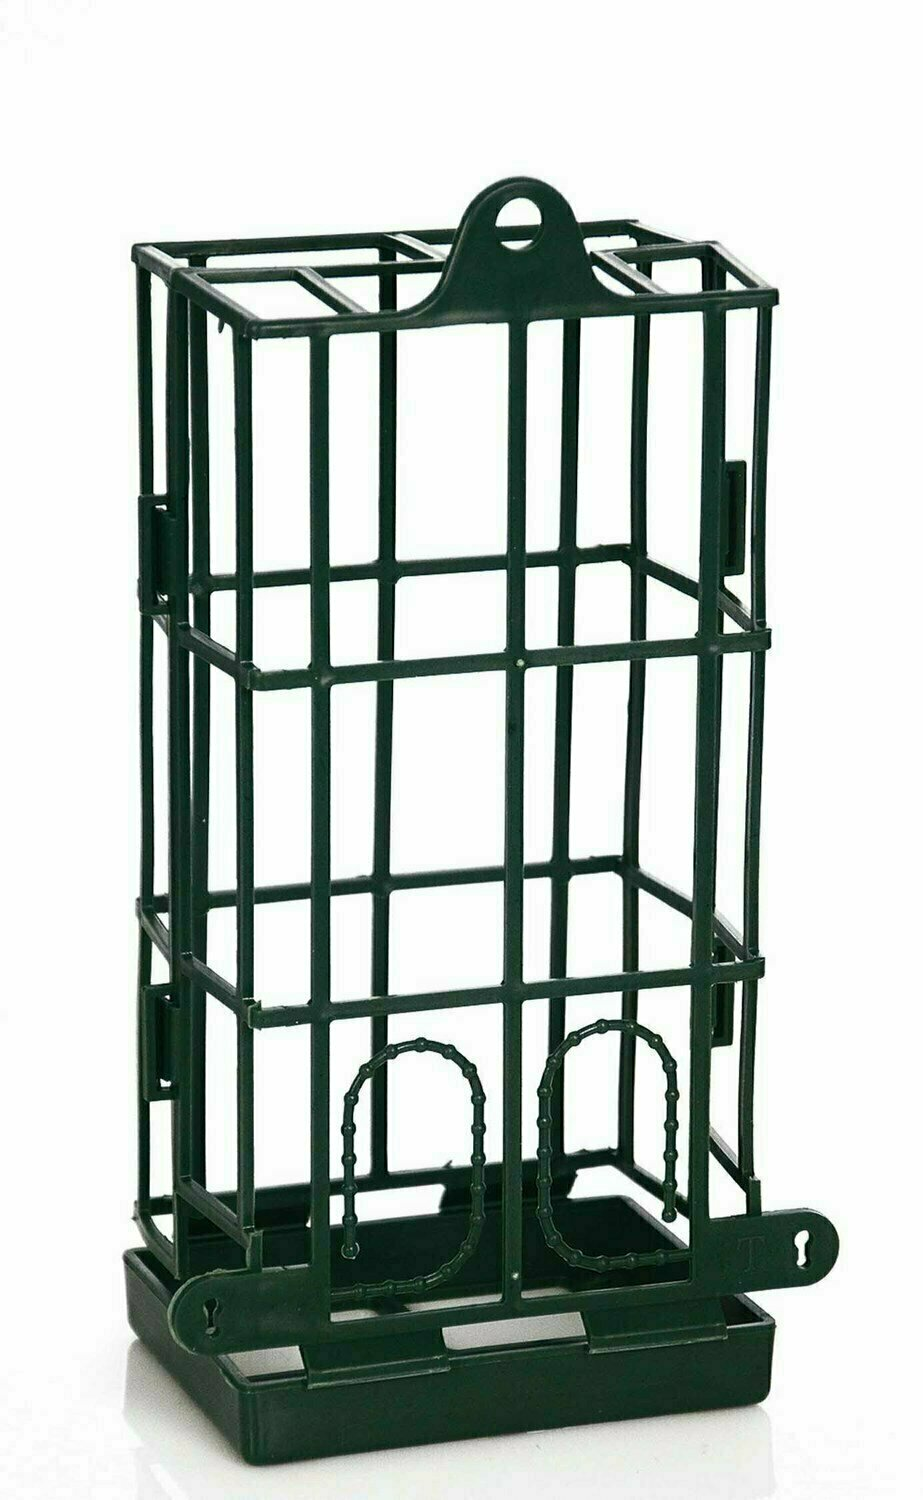 PL306G - Folding Plastic Cage For Oasis Block $34.95 each box |